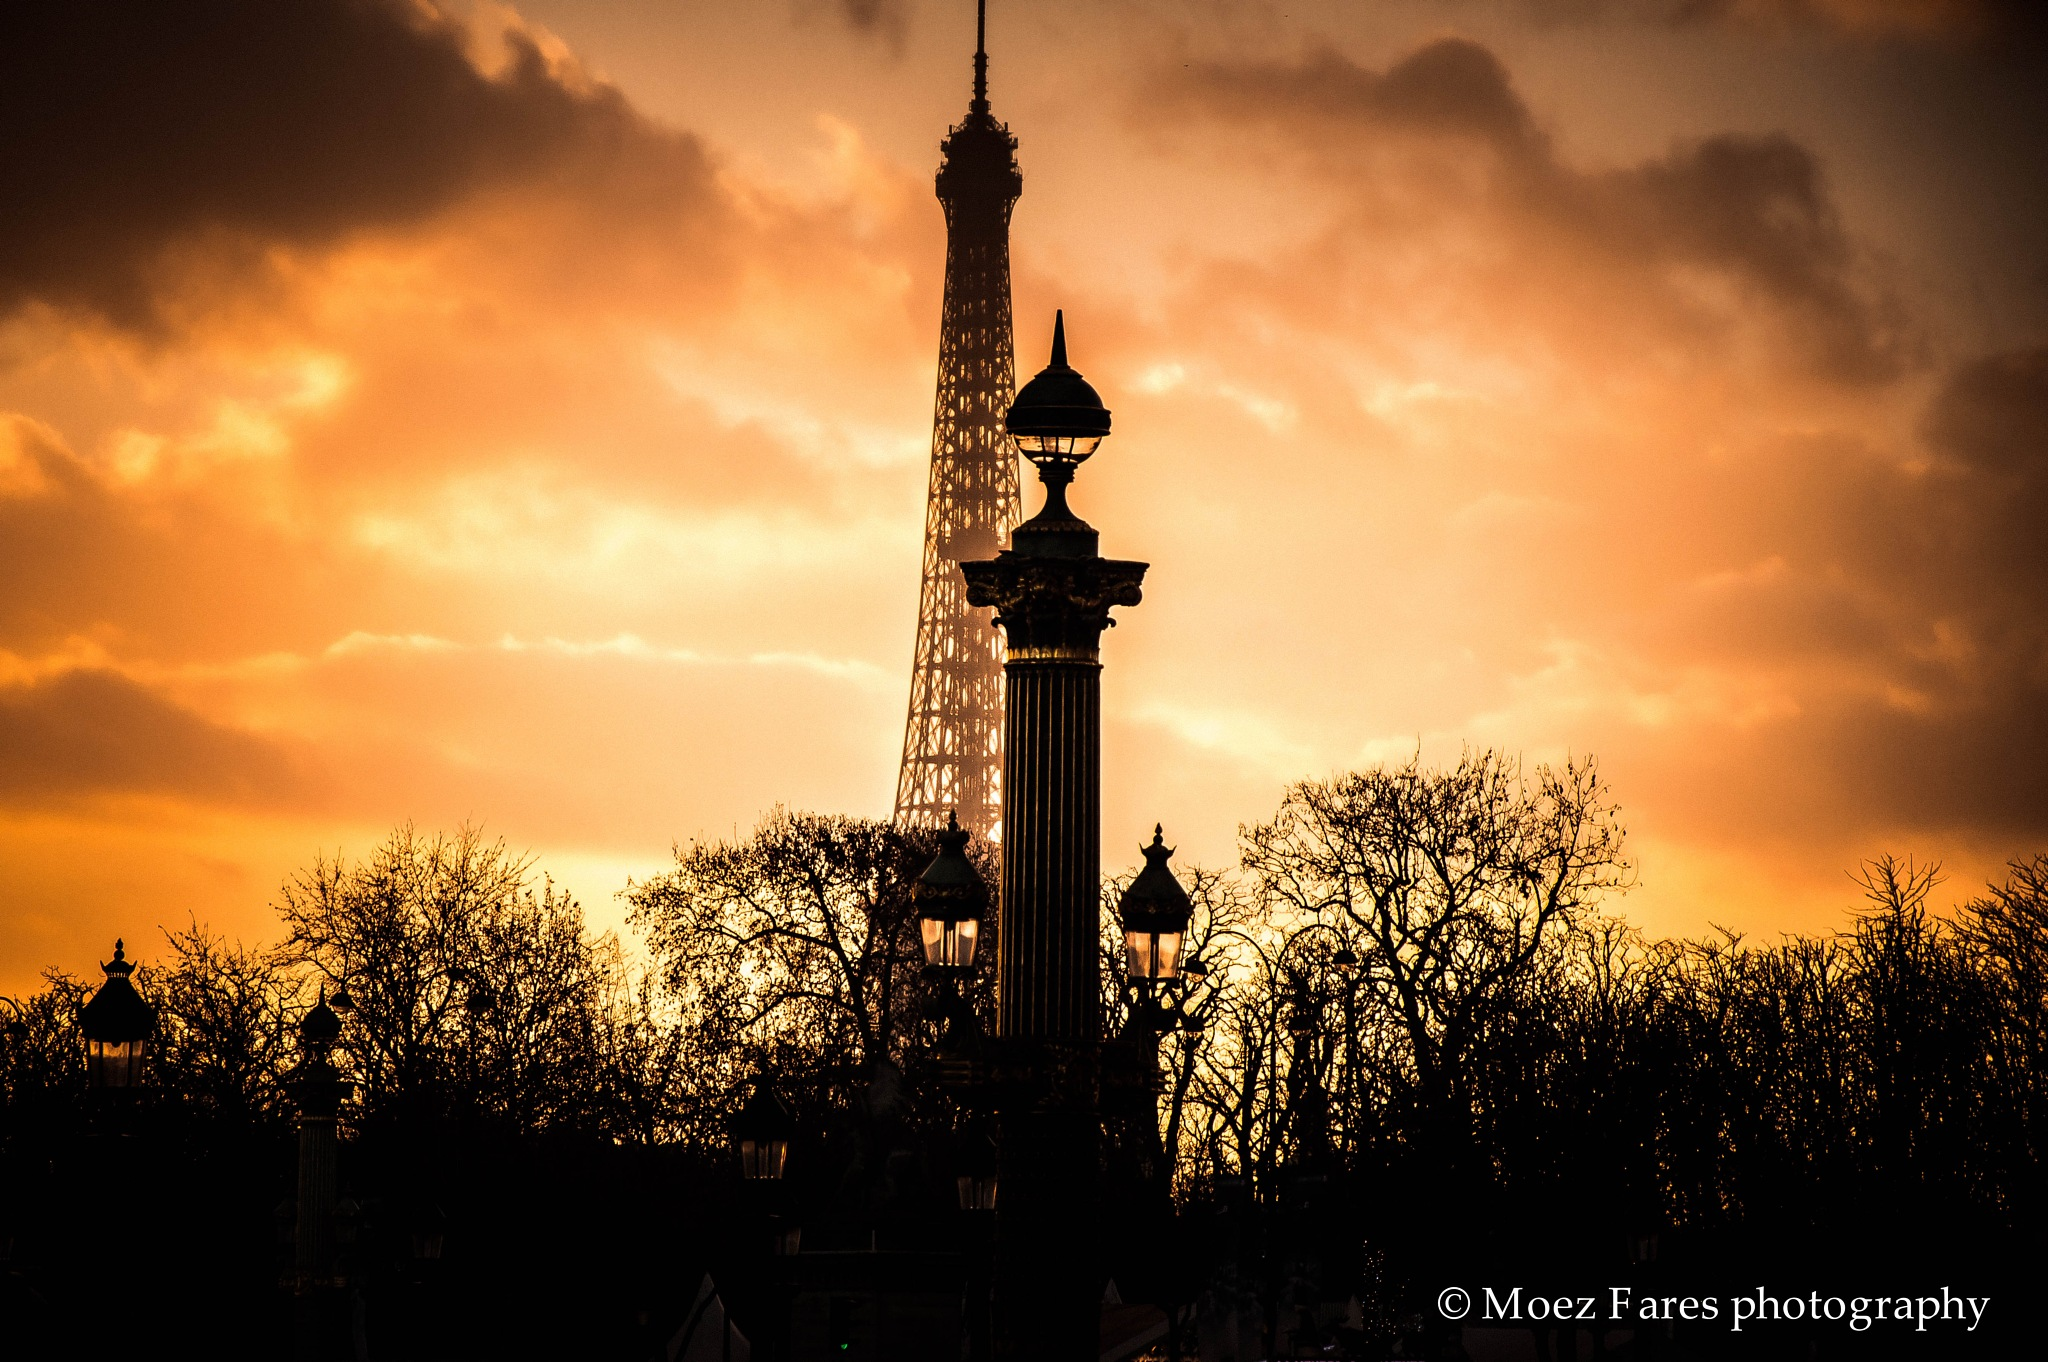 Paris by moez fares photography